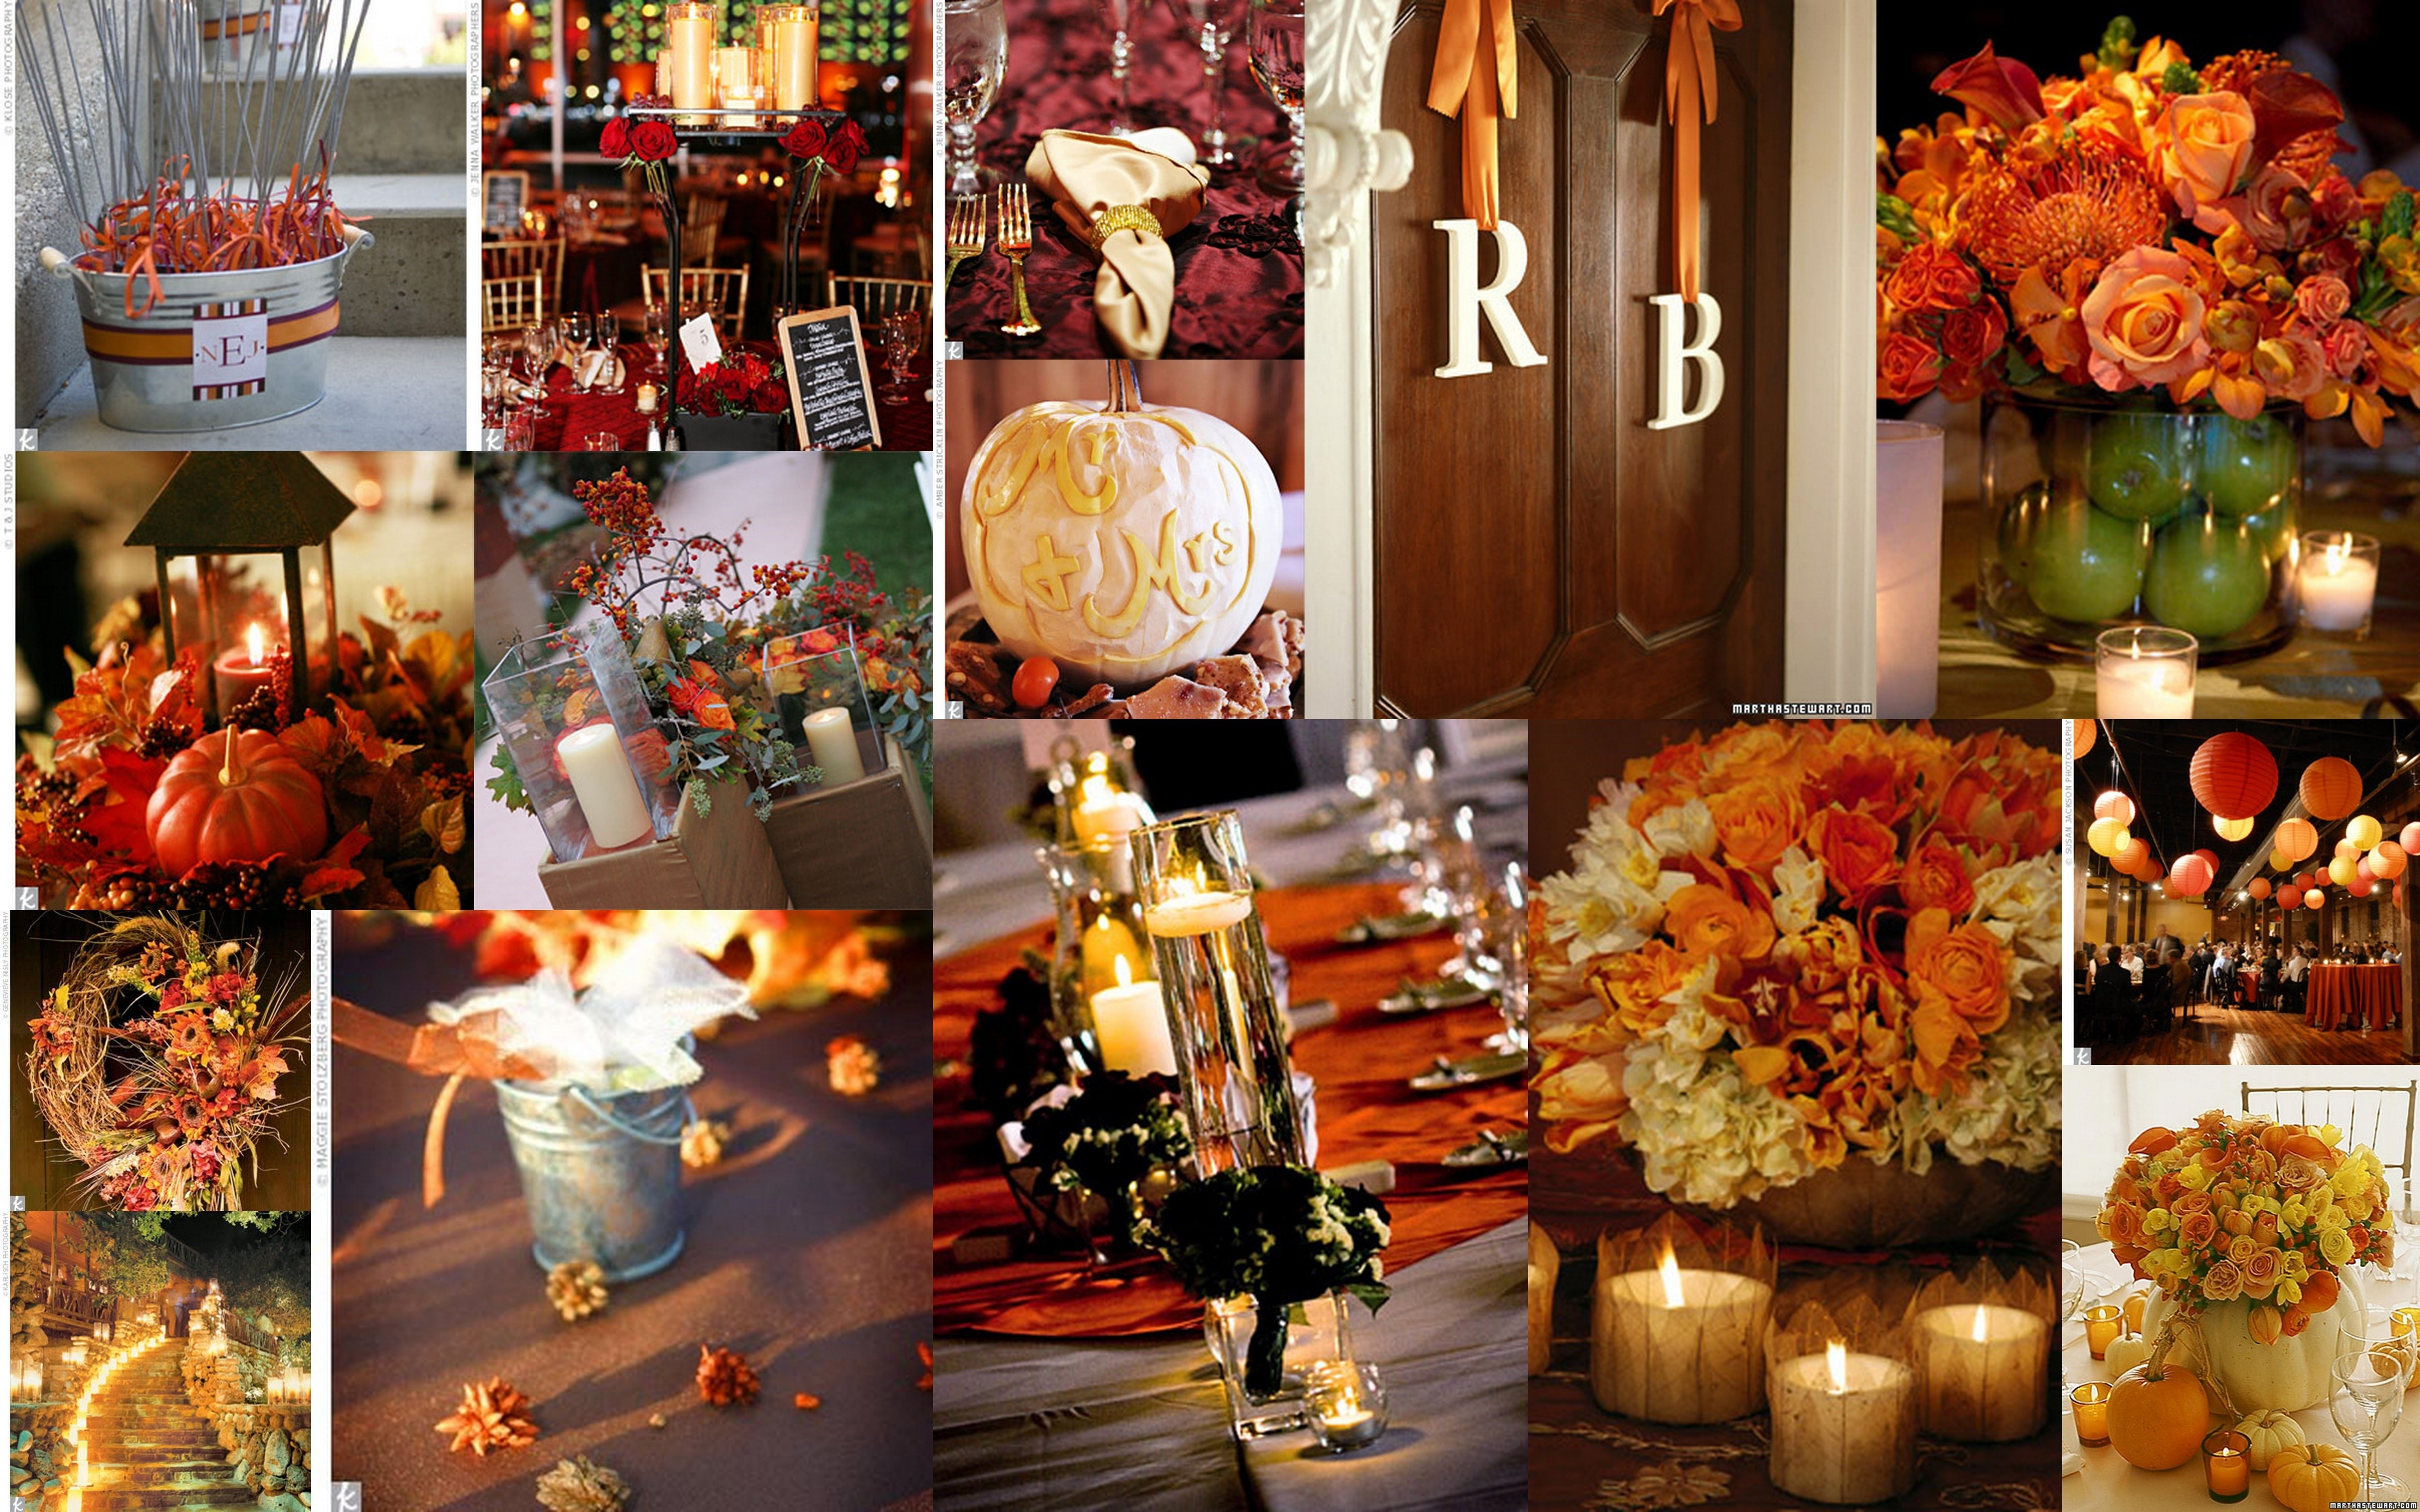 awesome small wedding ideas for fall images - styles & ideas 2018